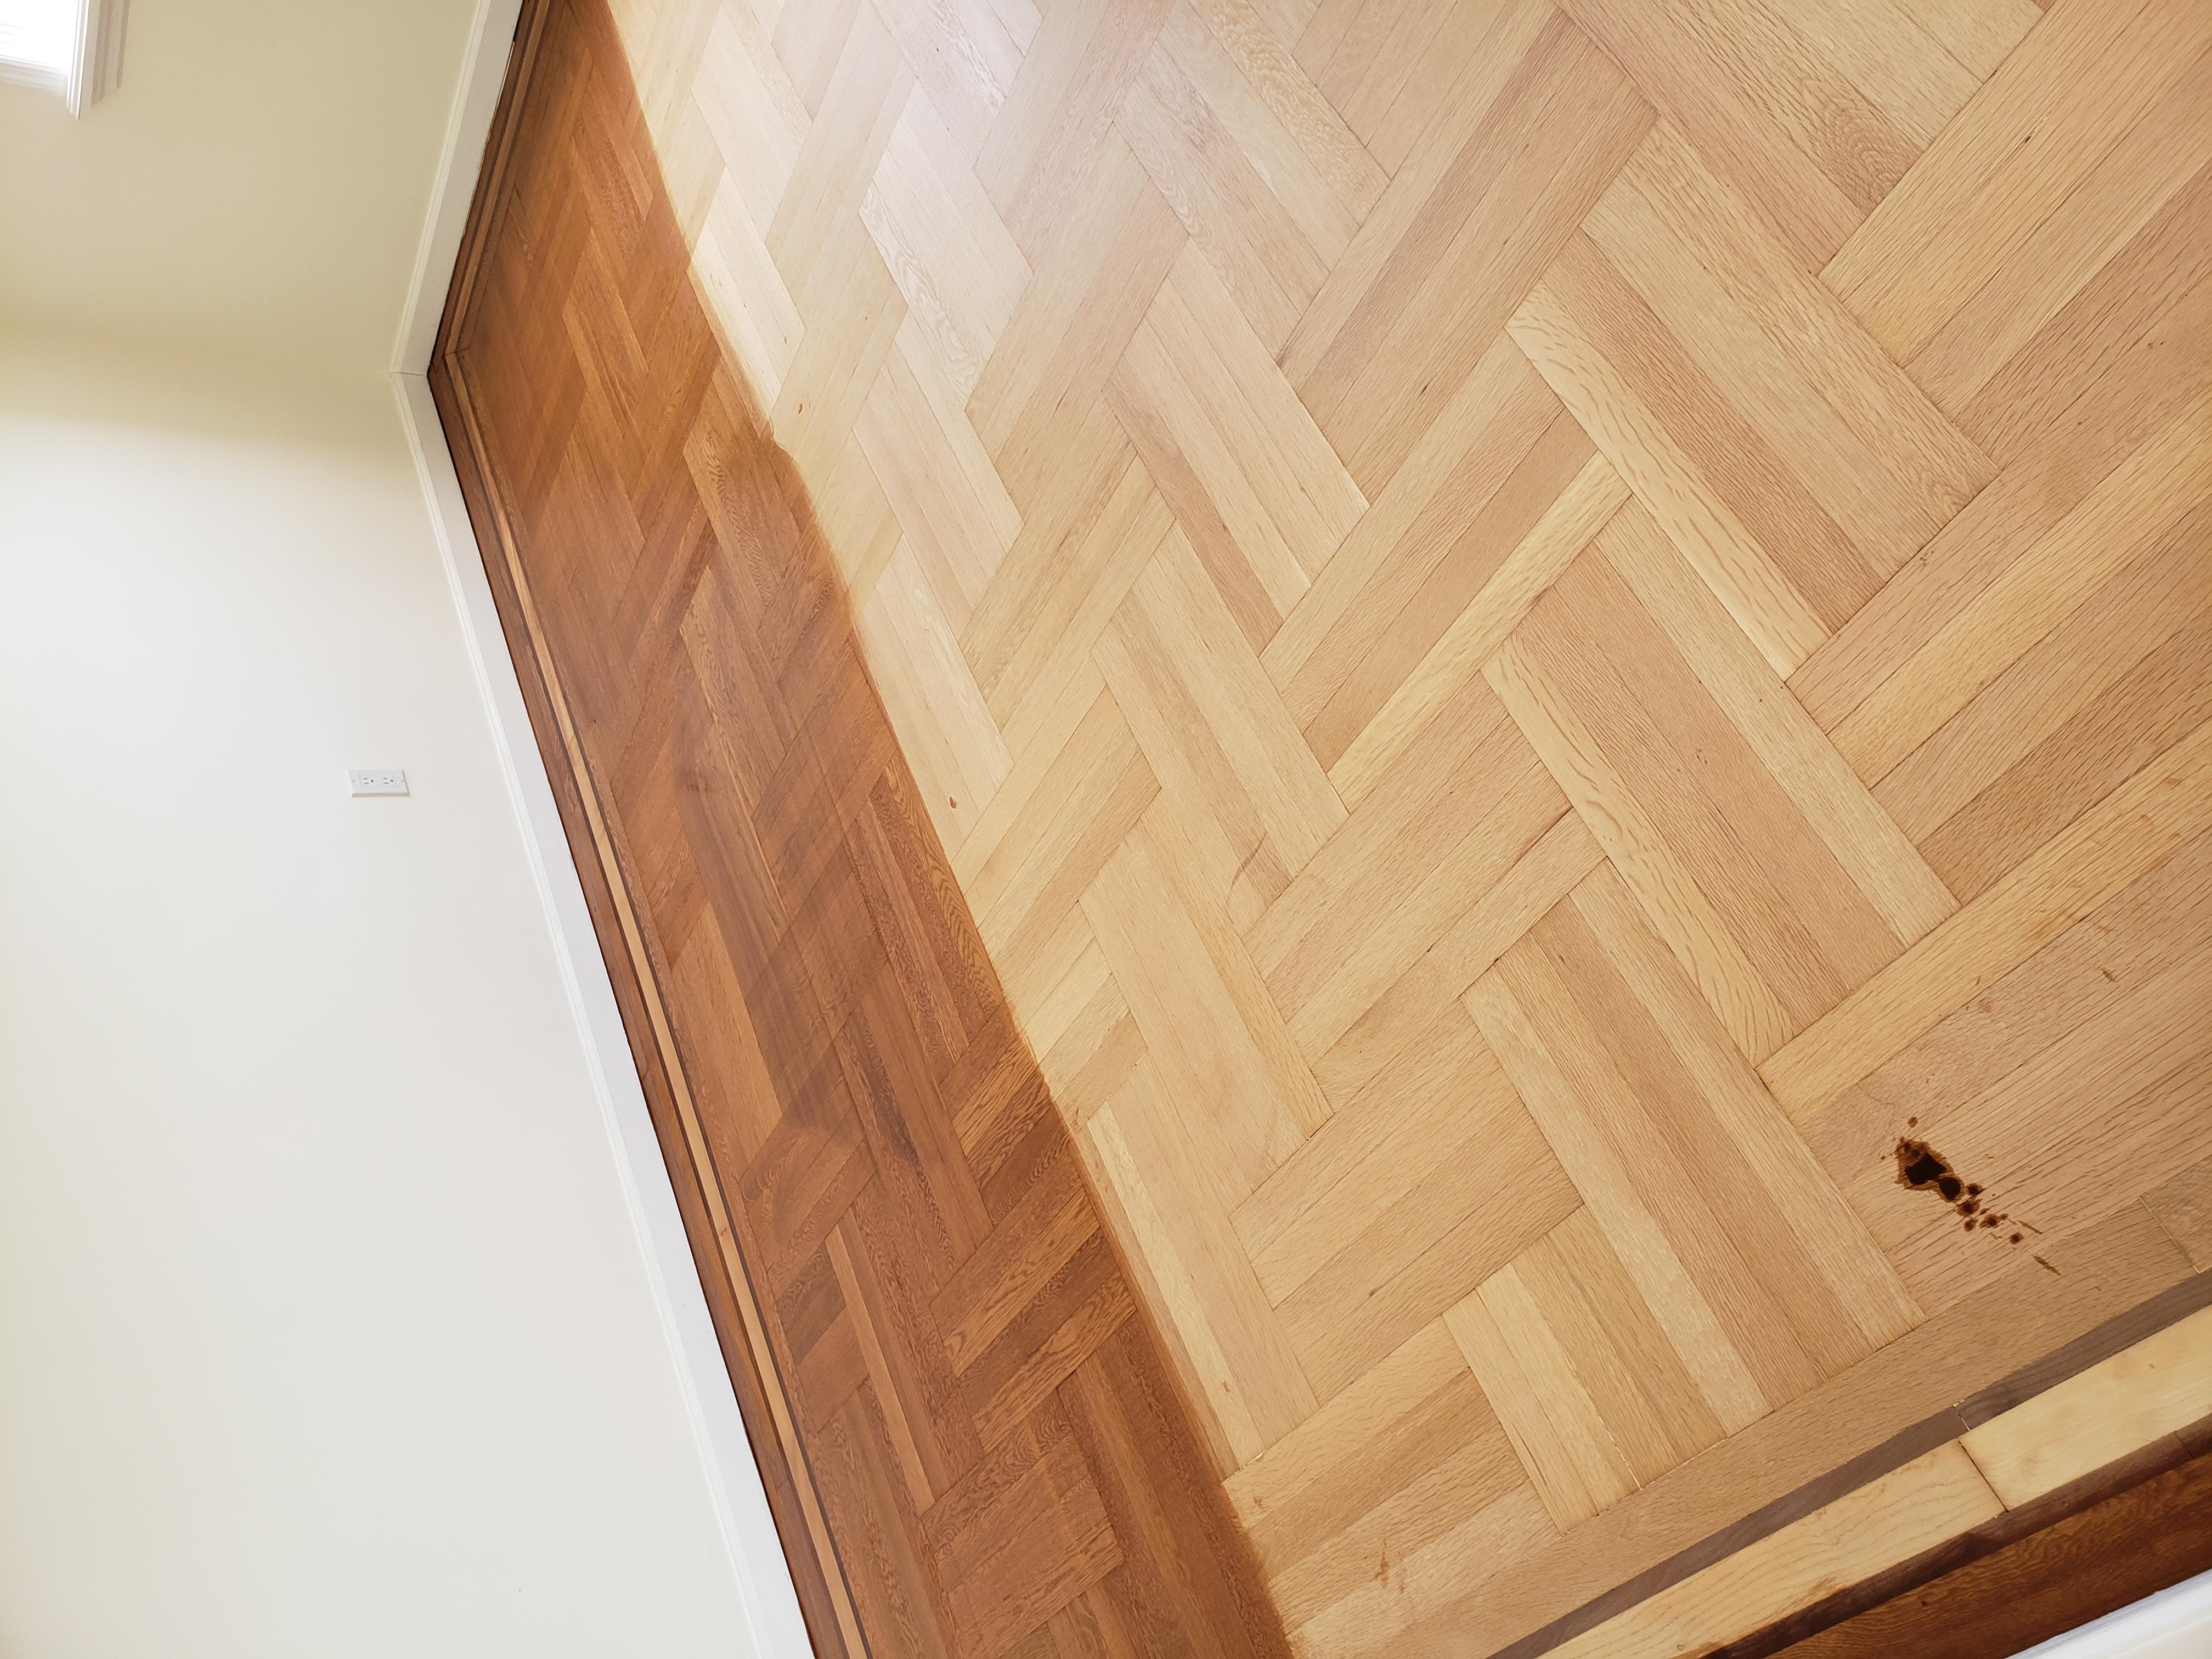 Refinish and installation of wood floor